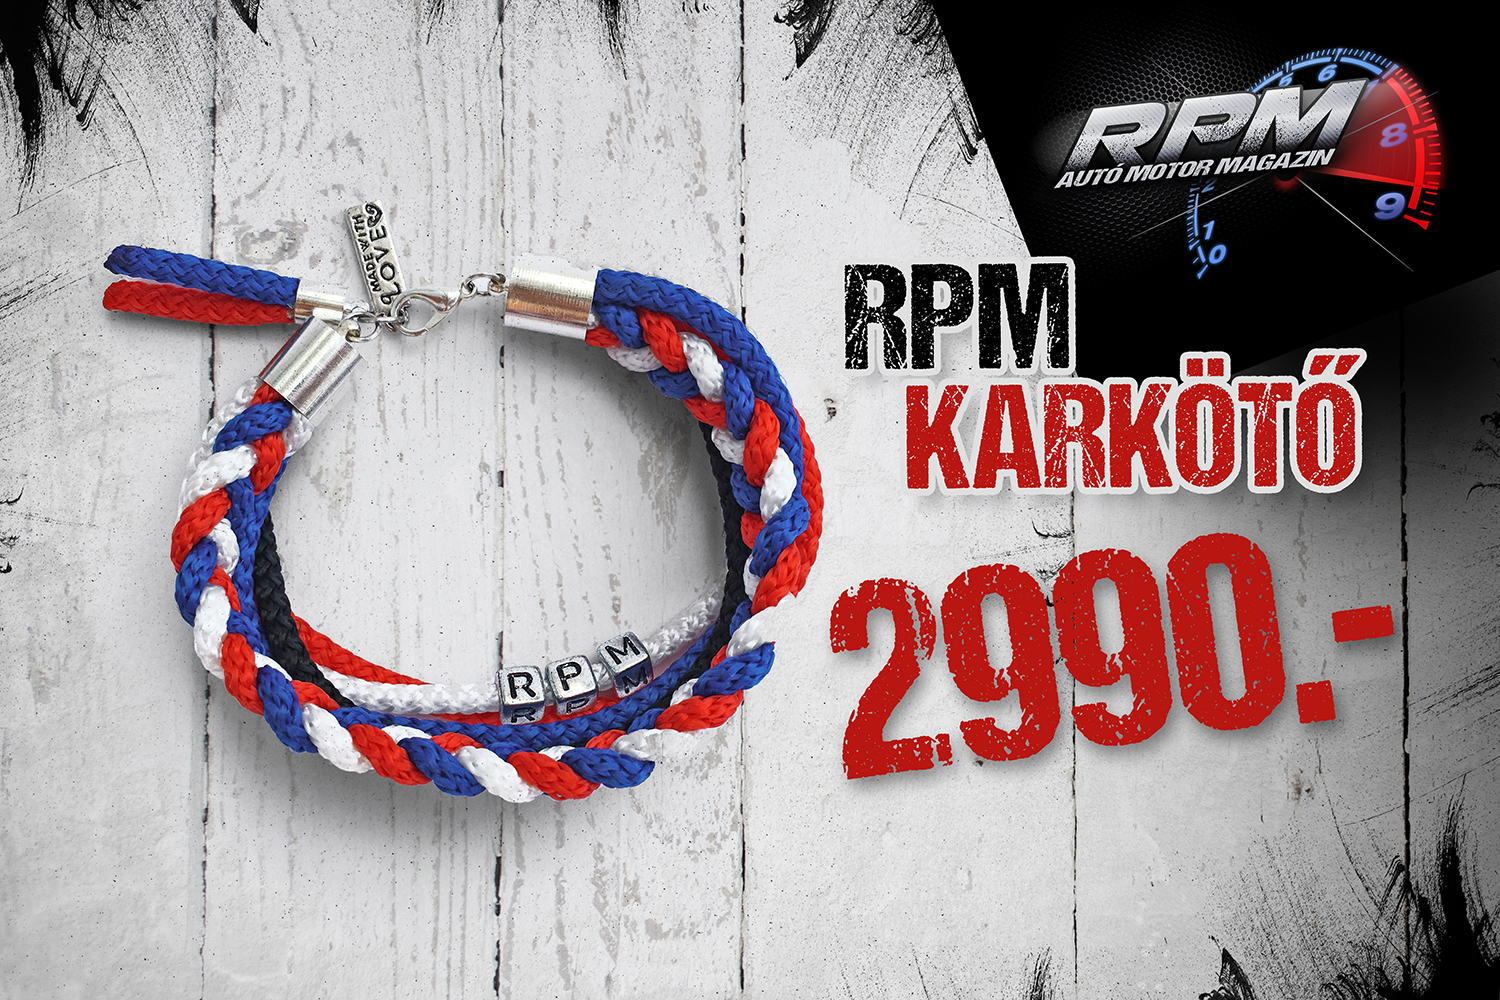 rpm_karkoto_women_price.jpg